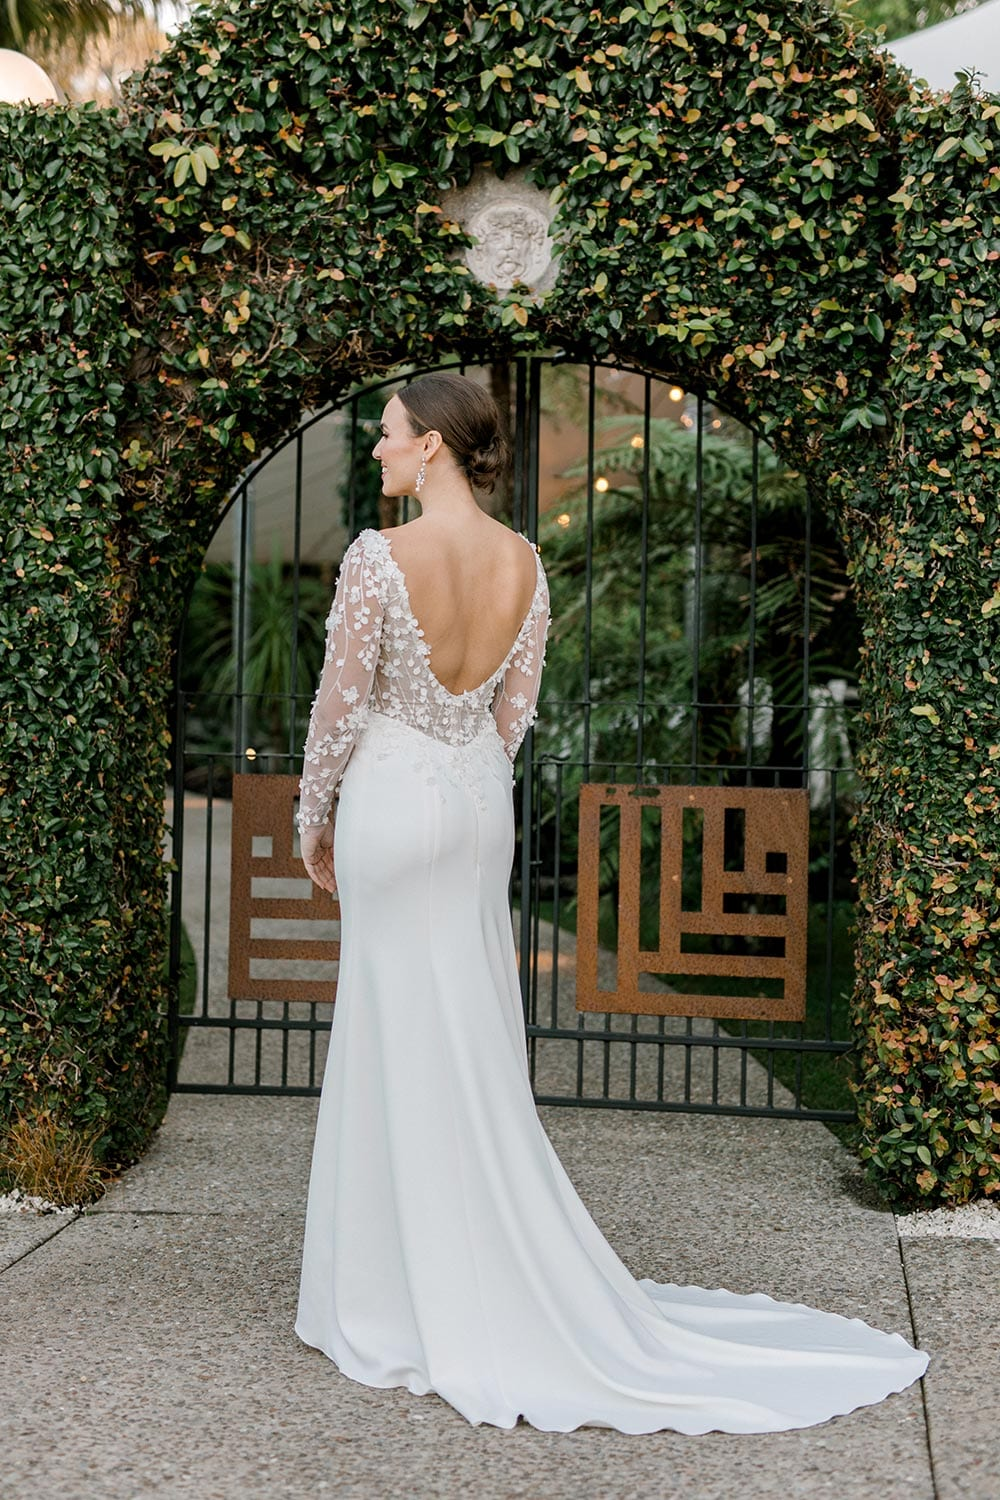 Celeste Wedding Dress from Vinka Design. Gorgeous form fitting stretch fabric wedding dress. The bodice is nude & semi-sheer, featuring 3-D beaded leaf lace, a deep V-neckline and a low V-shaped back with long sleeves. Full length portrait of back of dress, photographed at Tui Hills by Emmaline Photography.